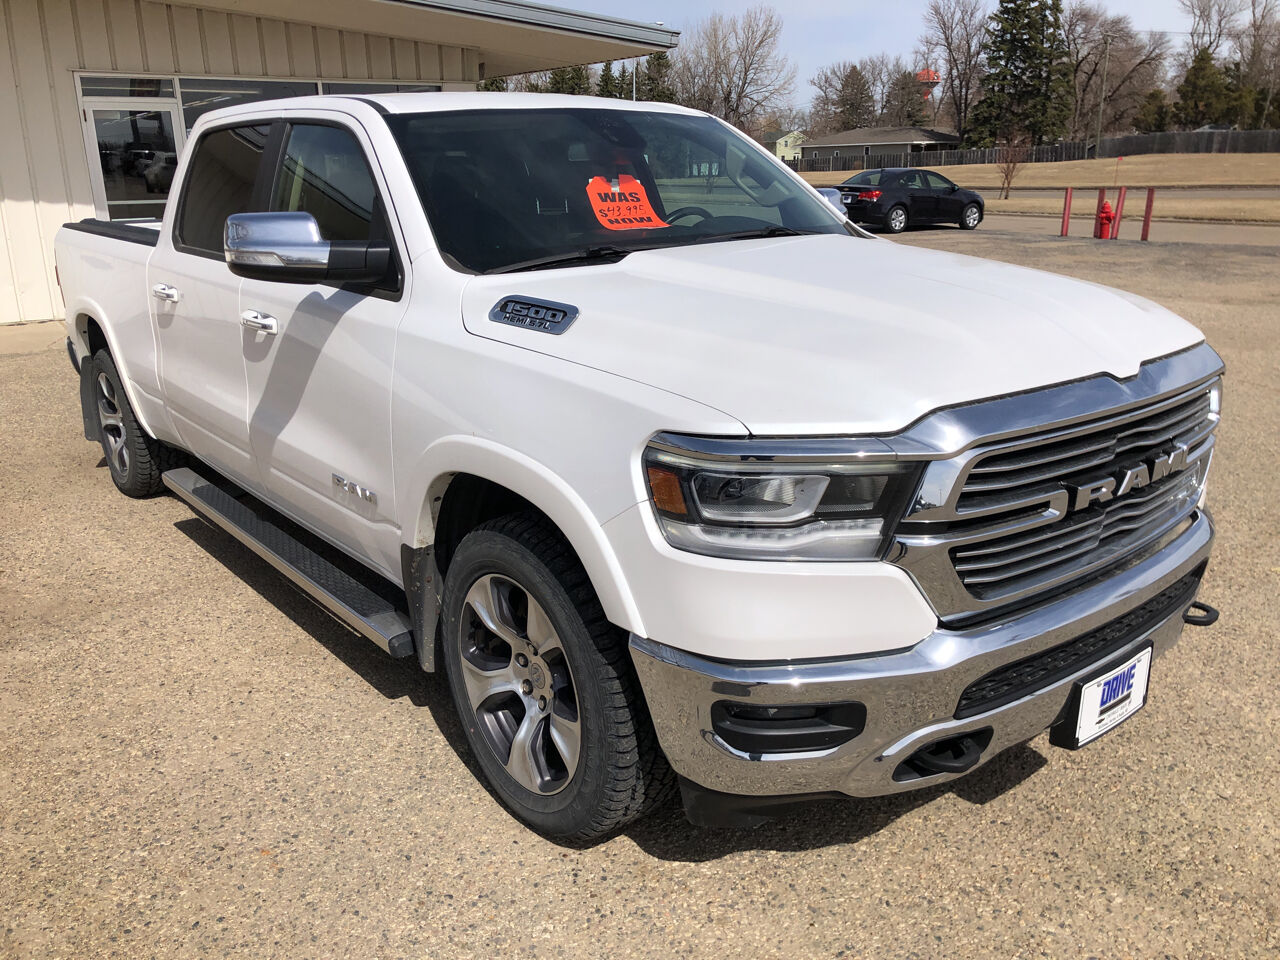 Pre-Owned 2019 RAM Ram Pickup 1500 Laramie 4x4 4dr Crew Cab 6.4 ft. SB Pickup Four Wheel Drive Pickup Truck